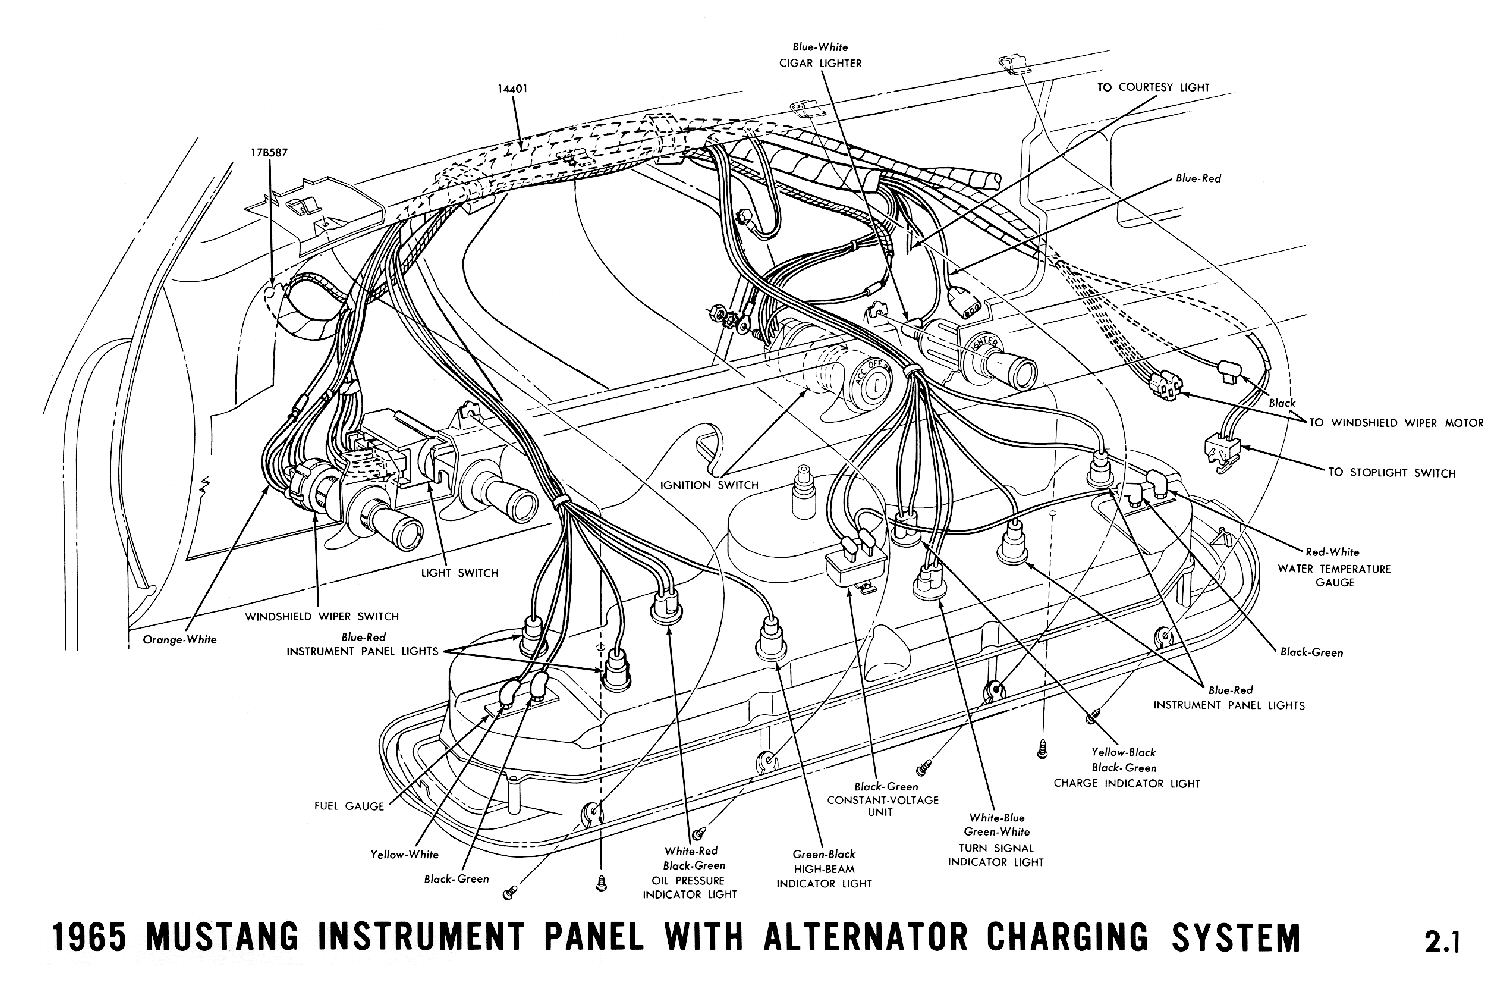 Ford Abs Wiring Diagram Ford Mustang Wiring Diagram Wiring Diagram For